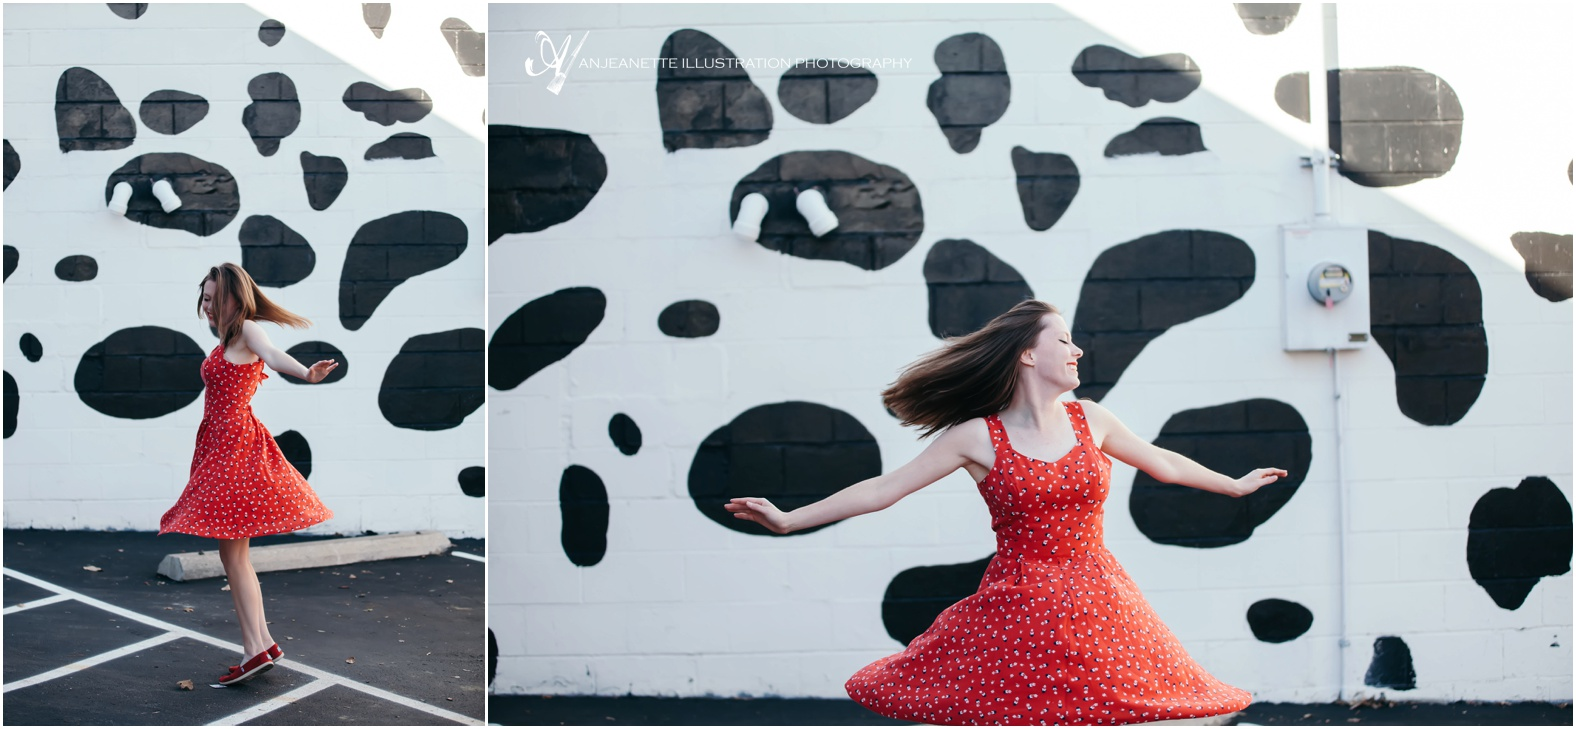 Hendersonville Tn Senior Pictures by Anjeanette Illustration Photography